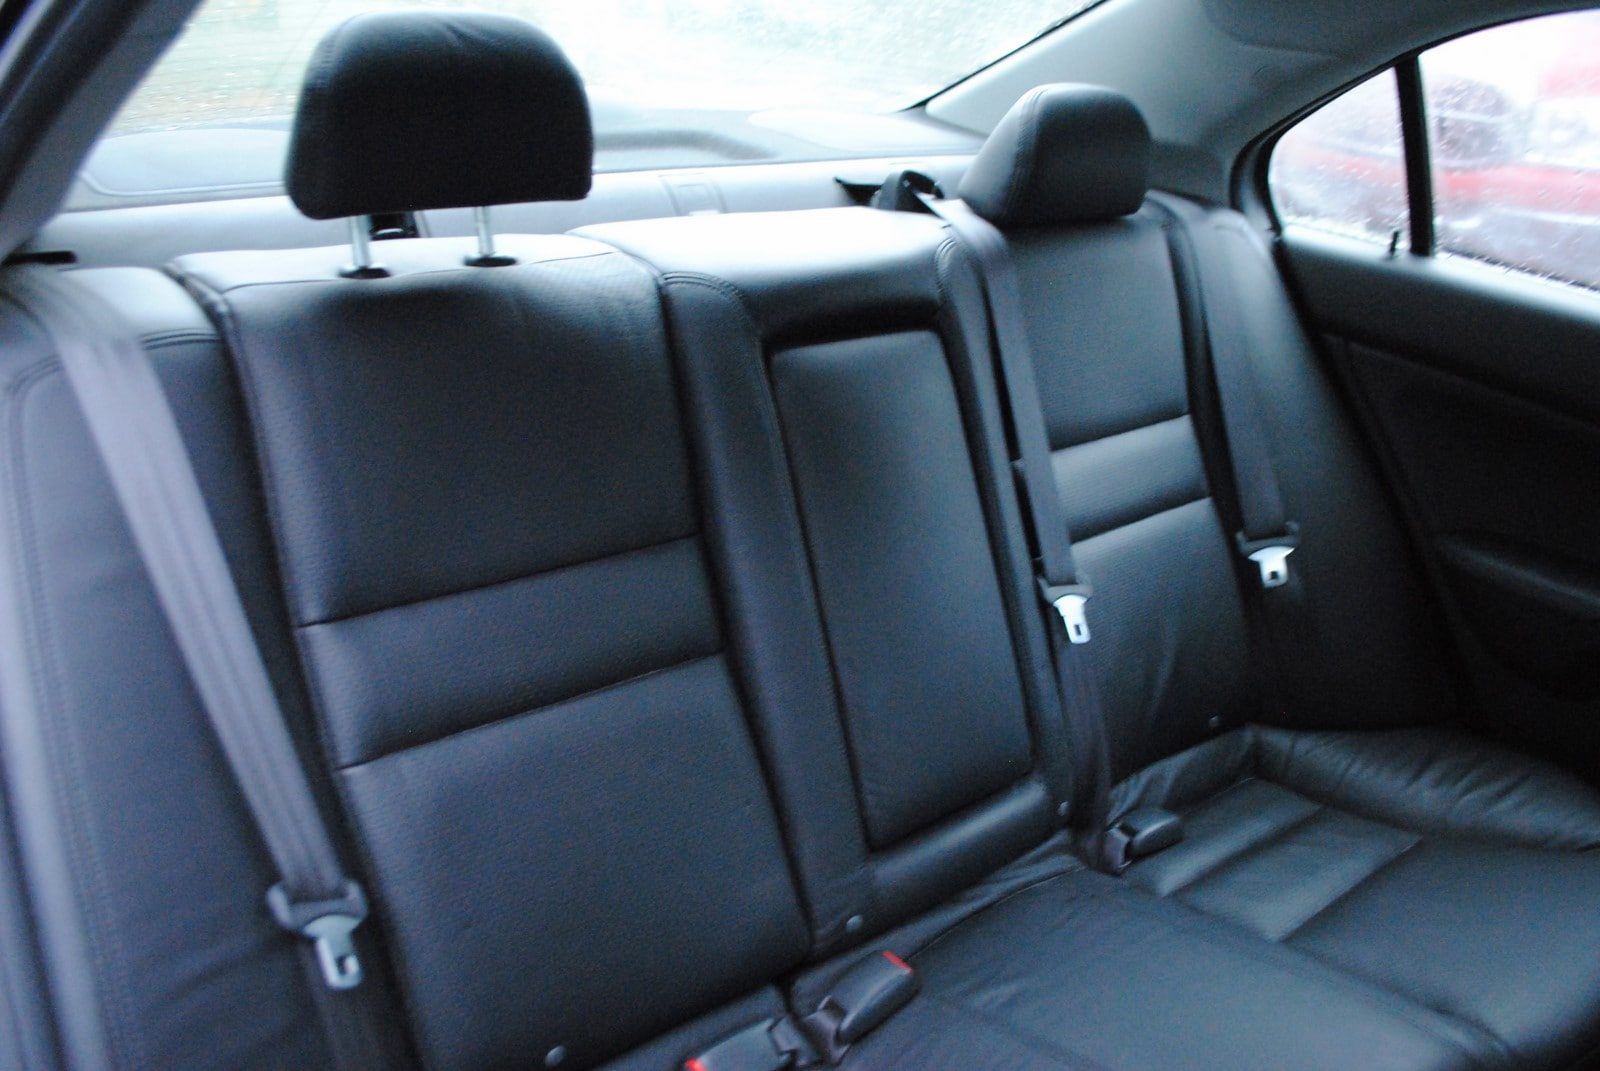 Acura Tsx Seat Cover Manual Online User Manual - Acura tl seat covers